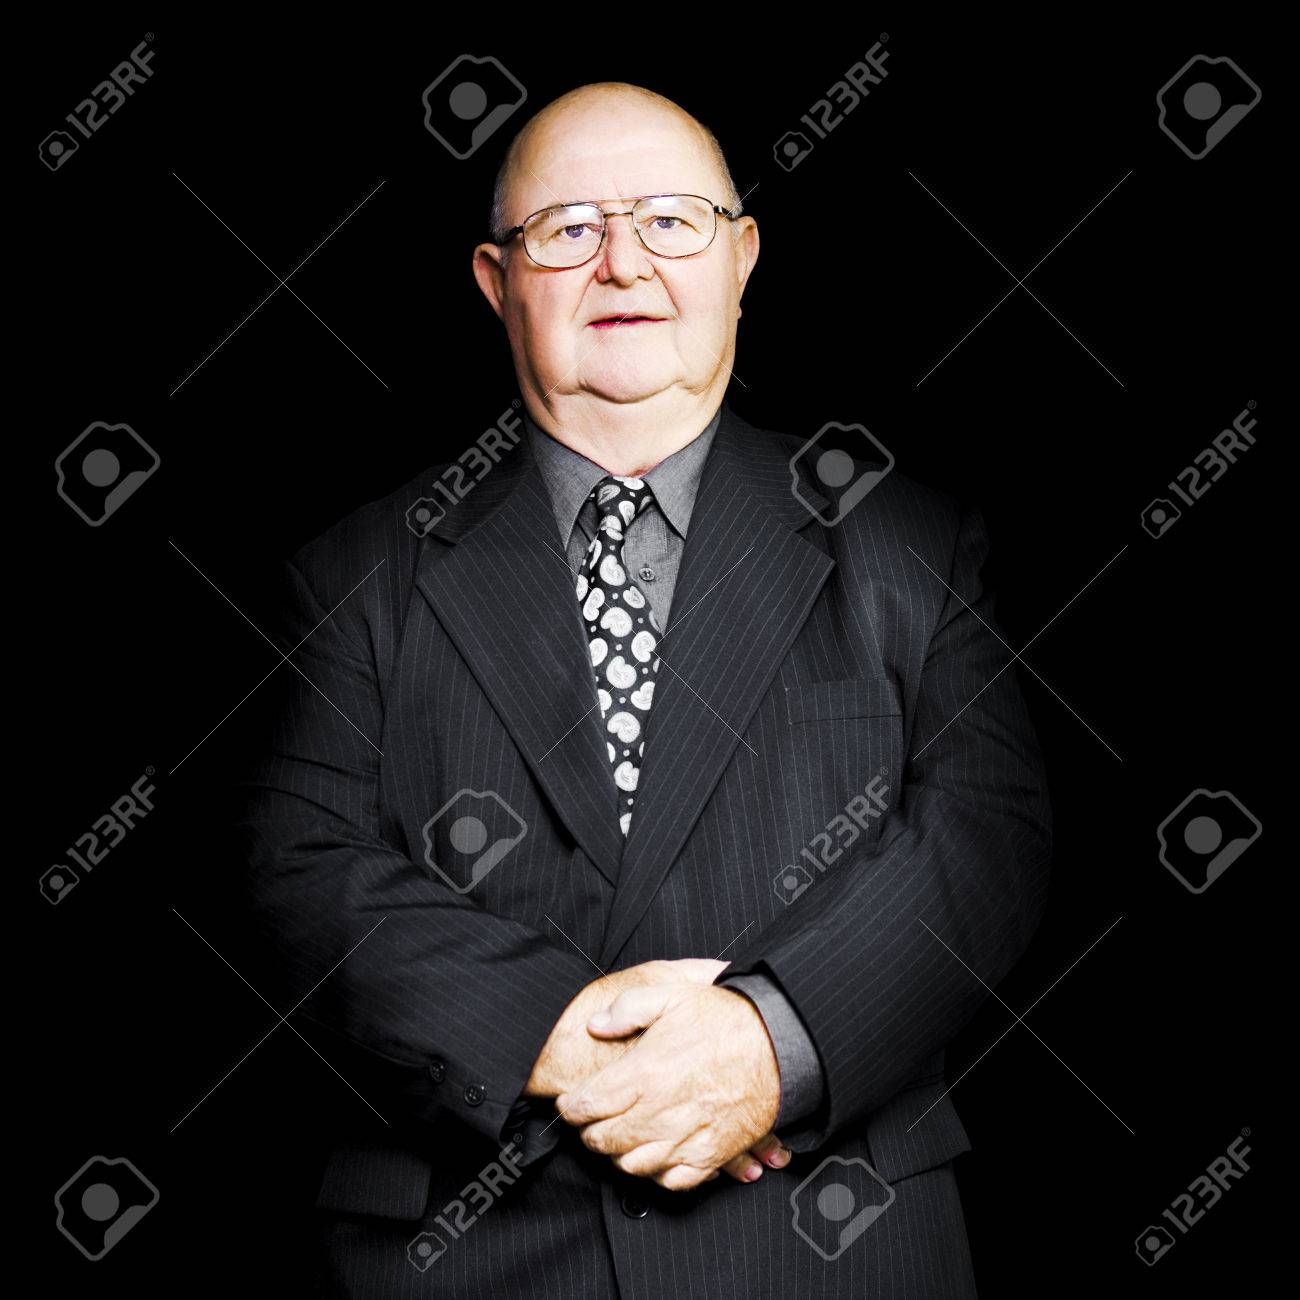 retirement advisor stock photos pictures royalty retirement advisor isolated studio portrait of a senior business man wearing glasses and suit